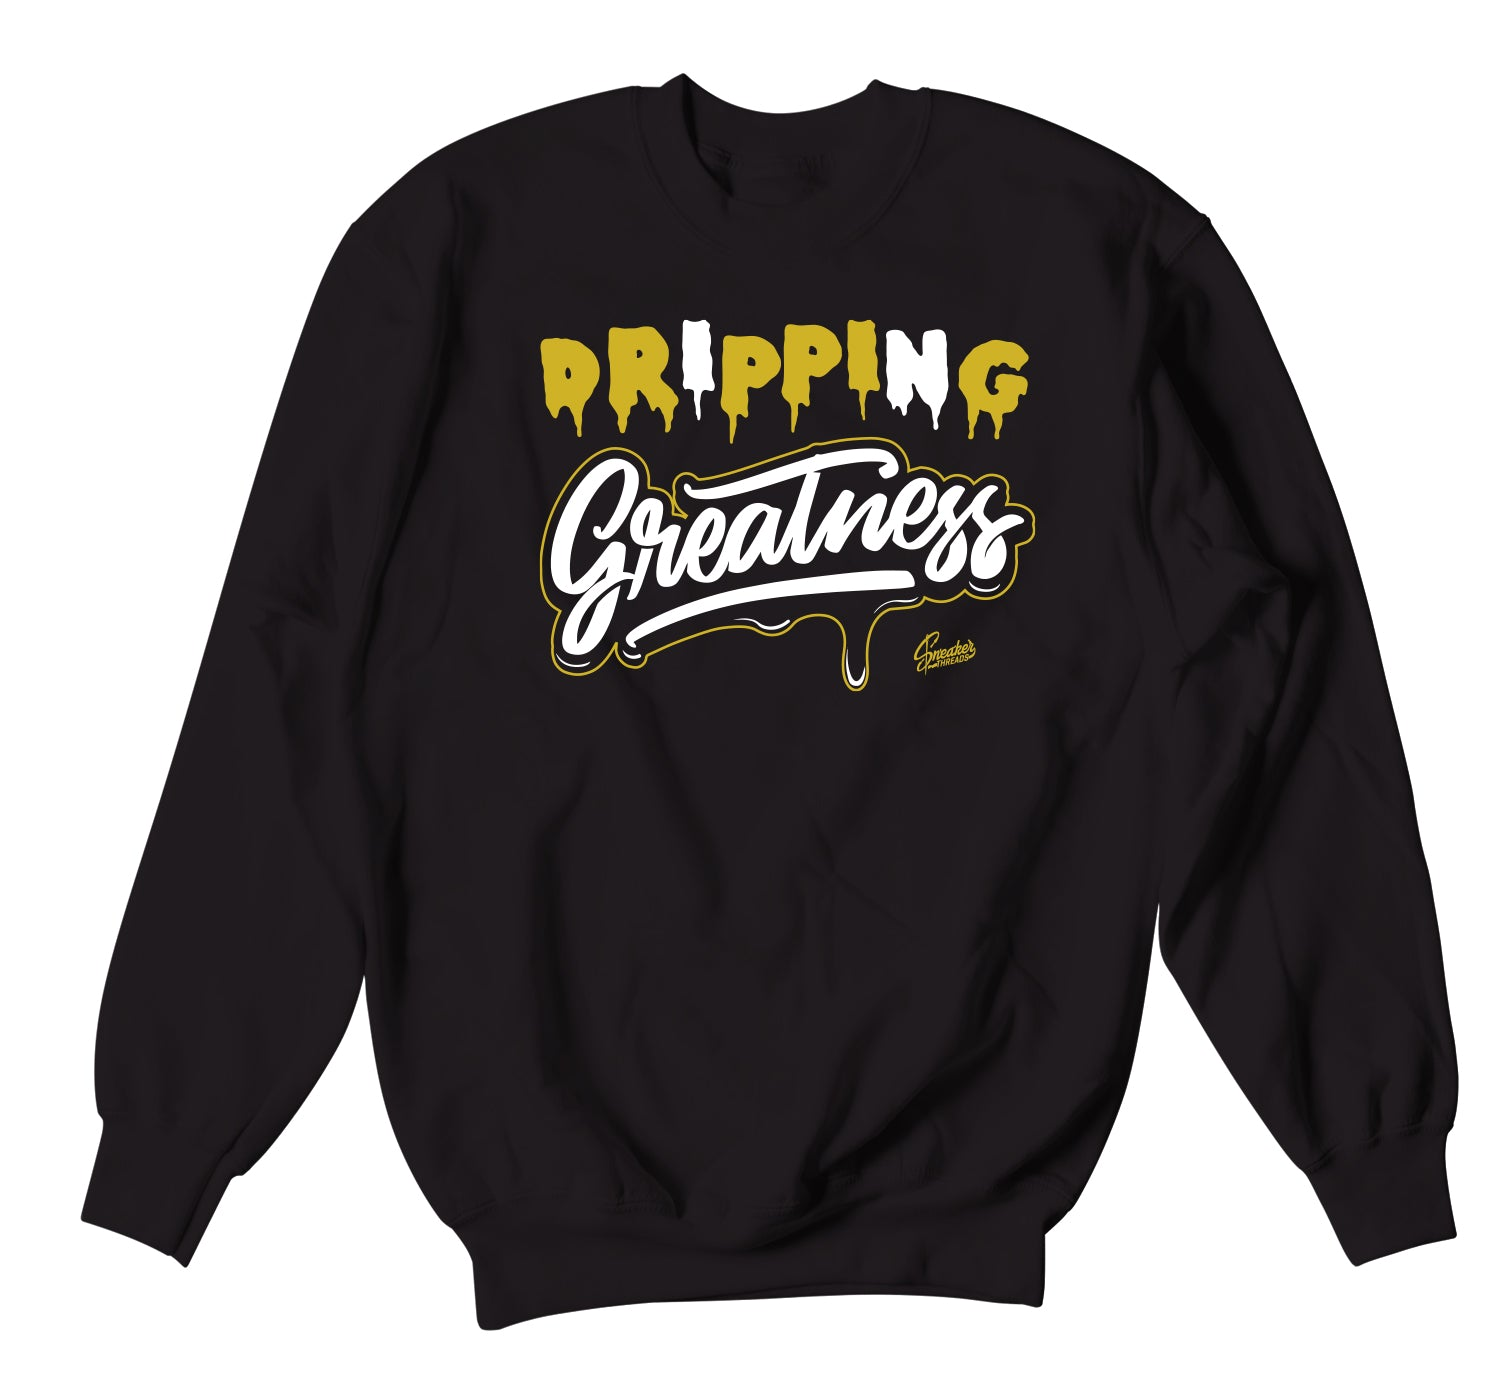 crew neck designed to match perfectly with Jordan 1 black gold sneaker collection